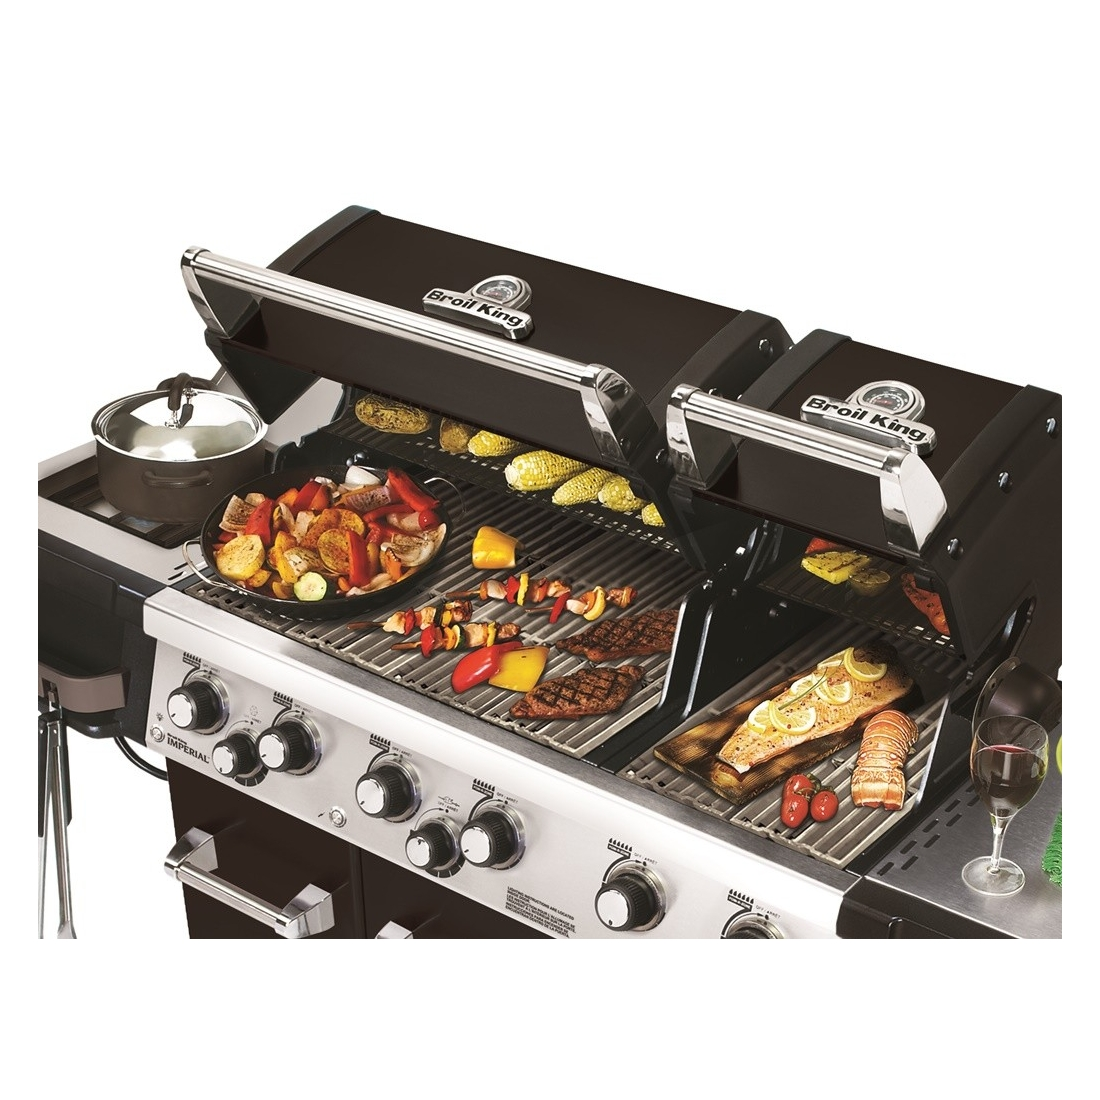 Küchen Grillplatte Broil King Regal™ 690er Xl, Black Griller-shop-graz